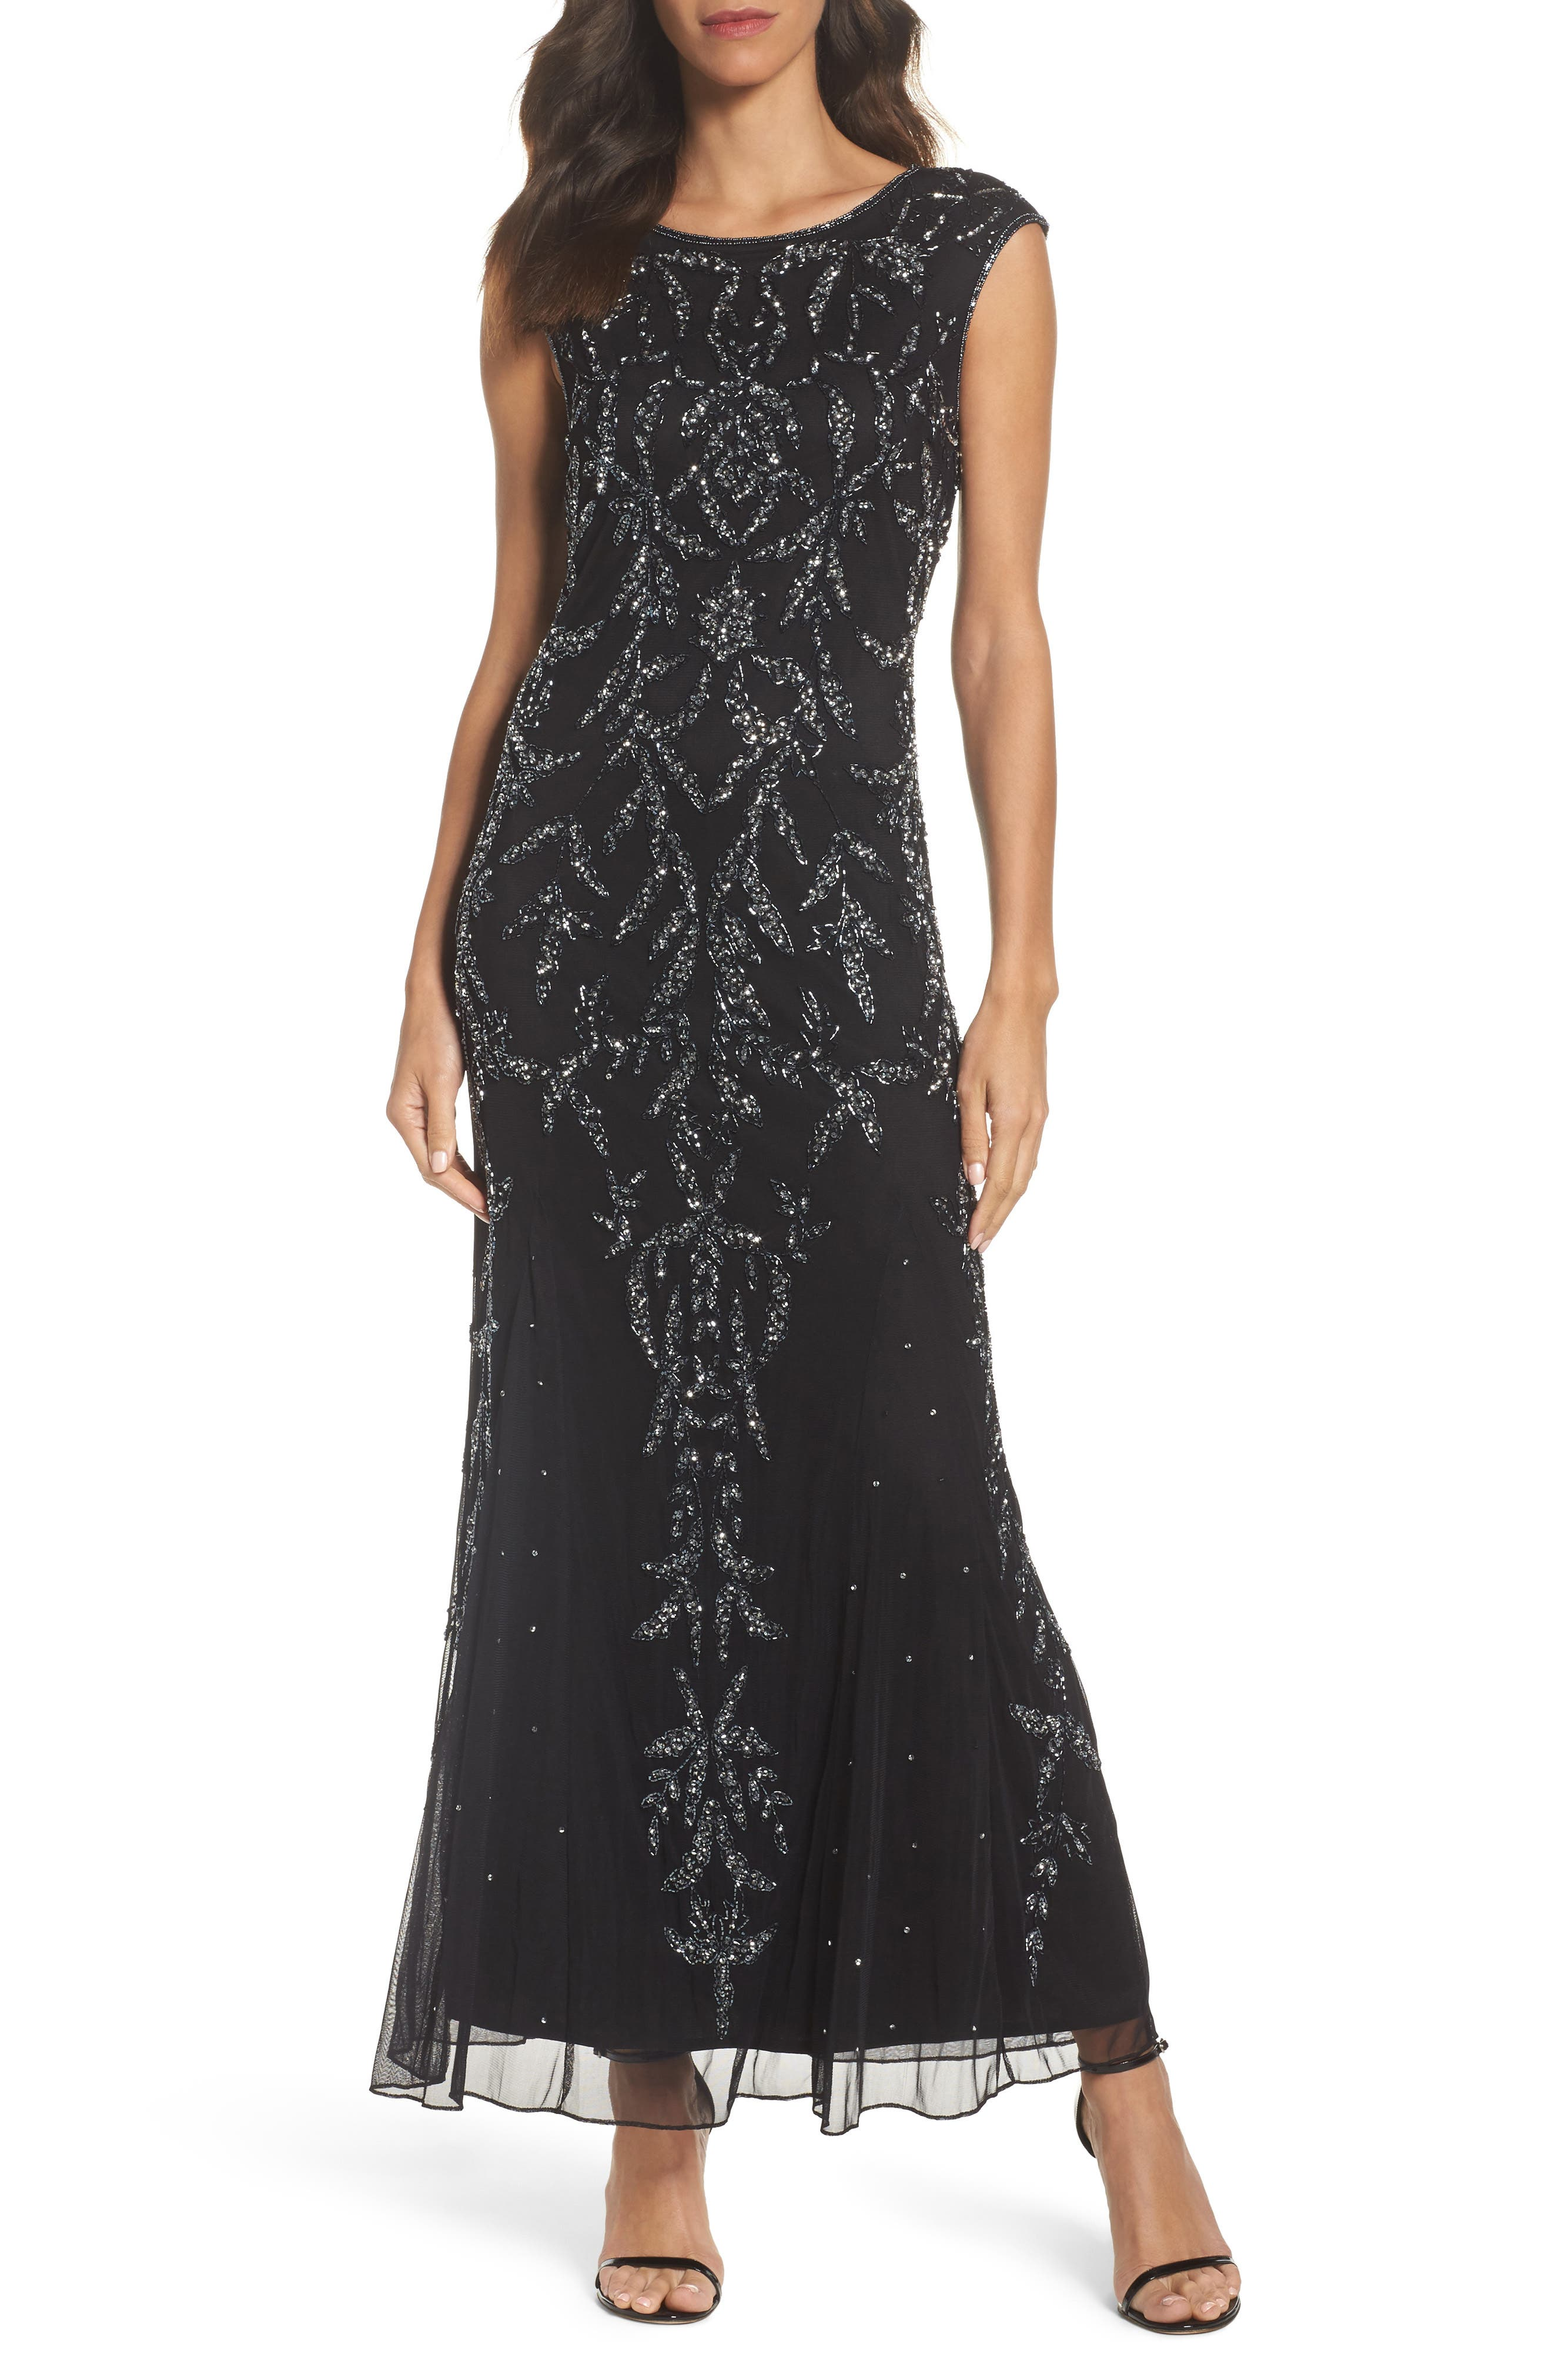 Main Image - Pisarro Nights Floral Motif Embellished Gown